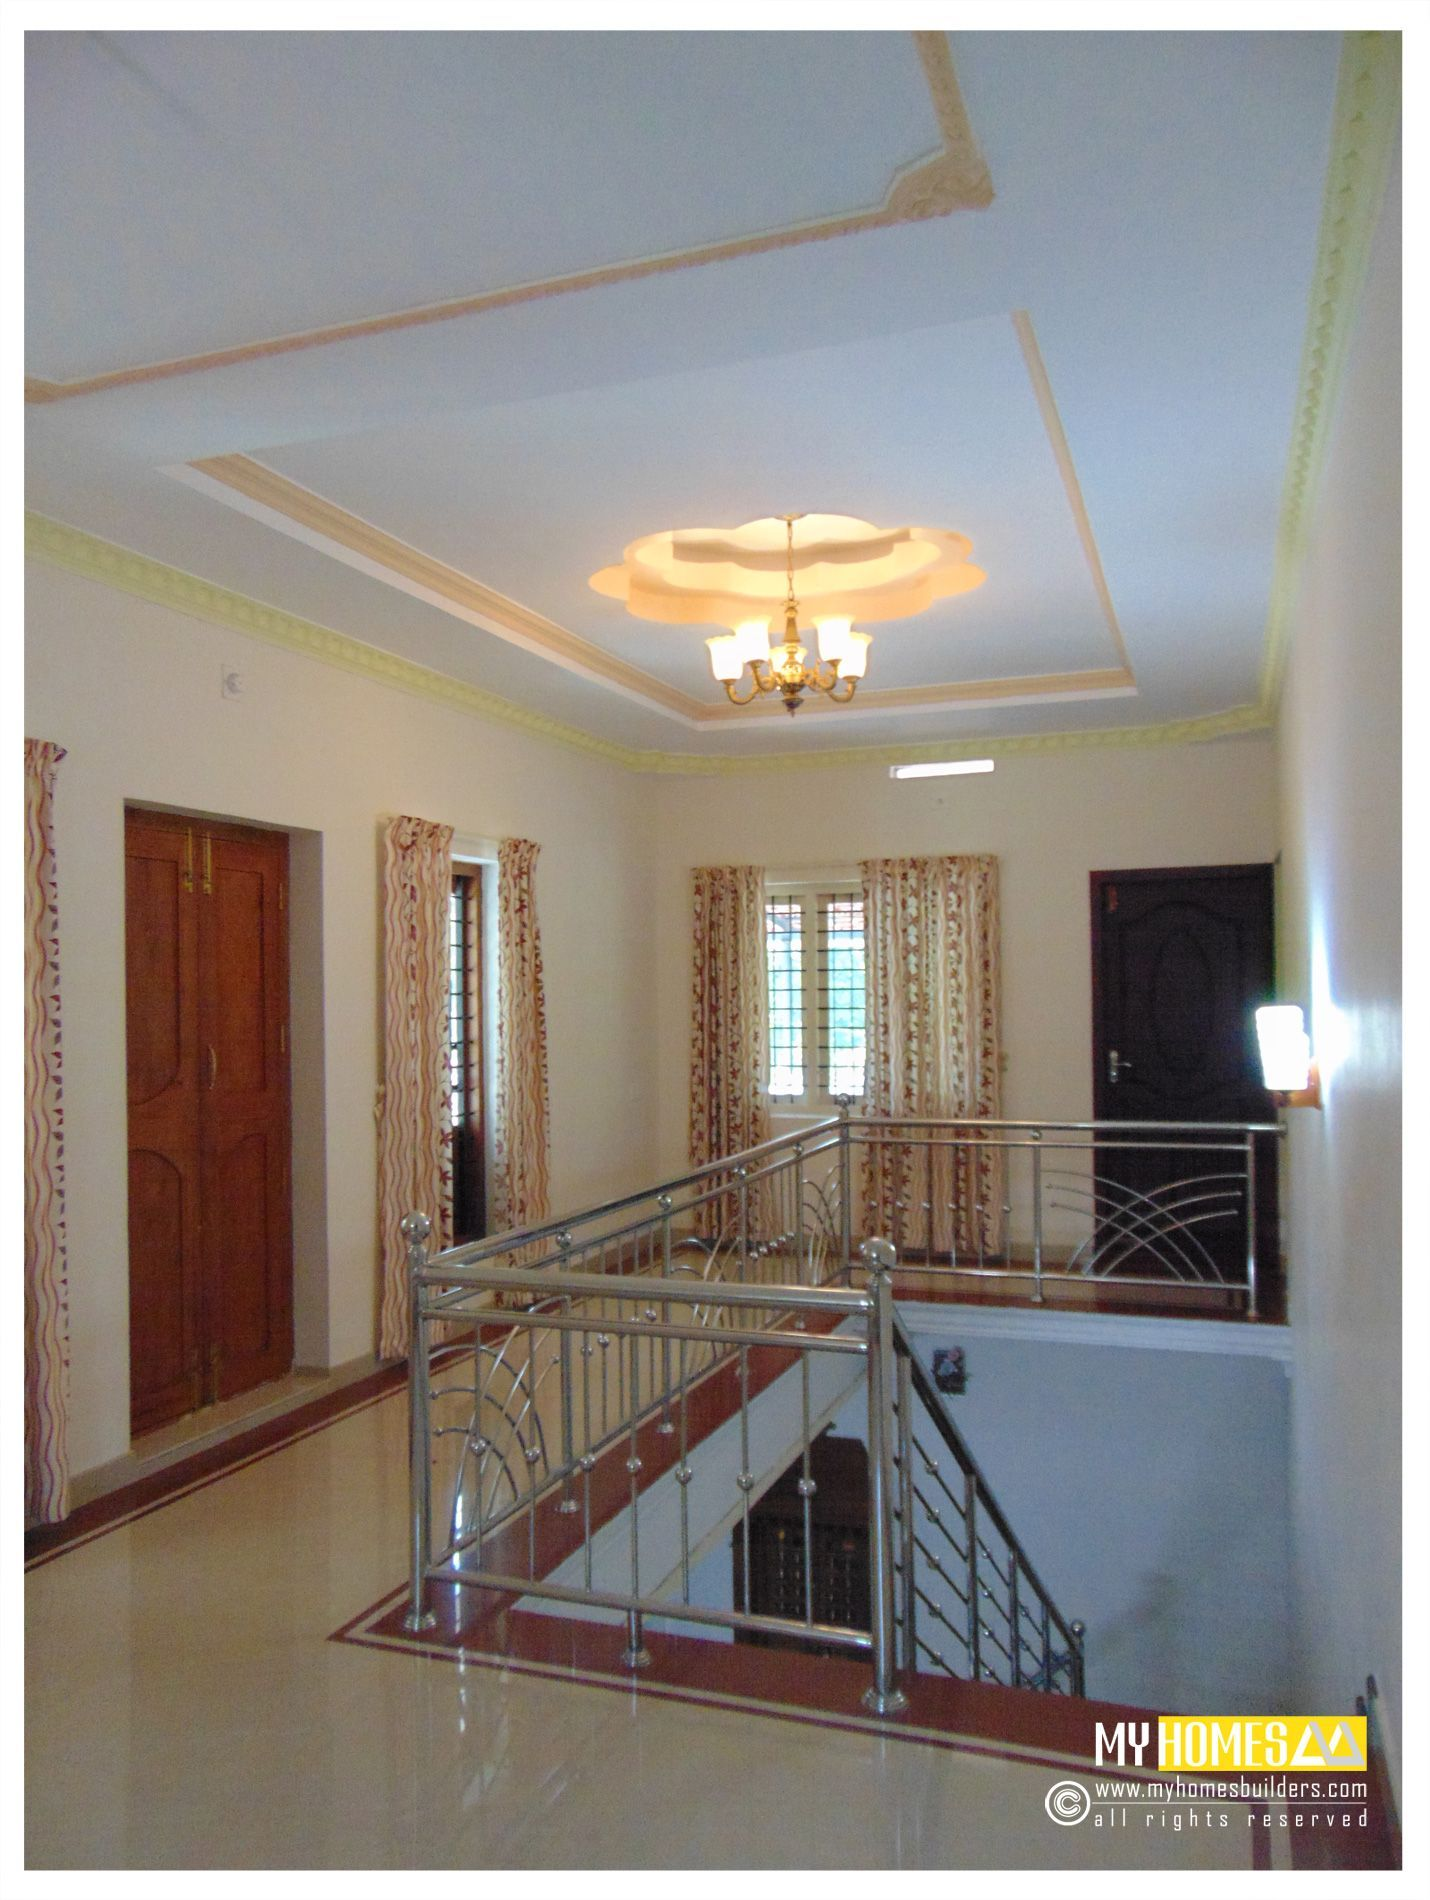 Kerala Style Contemporary House Images Kitchendesignkeralastyle Kerala Houses Staircase Design Modern House Plans